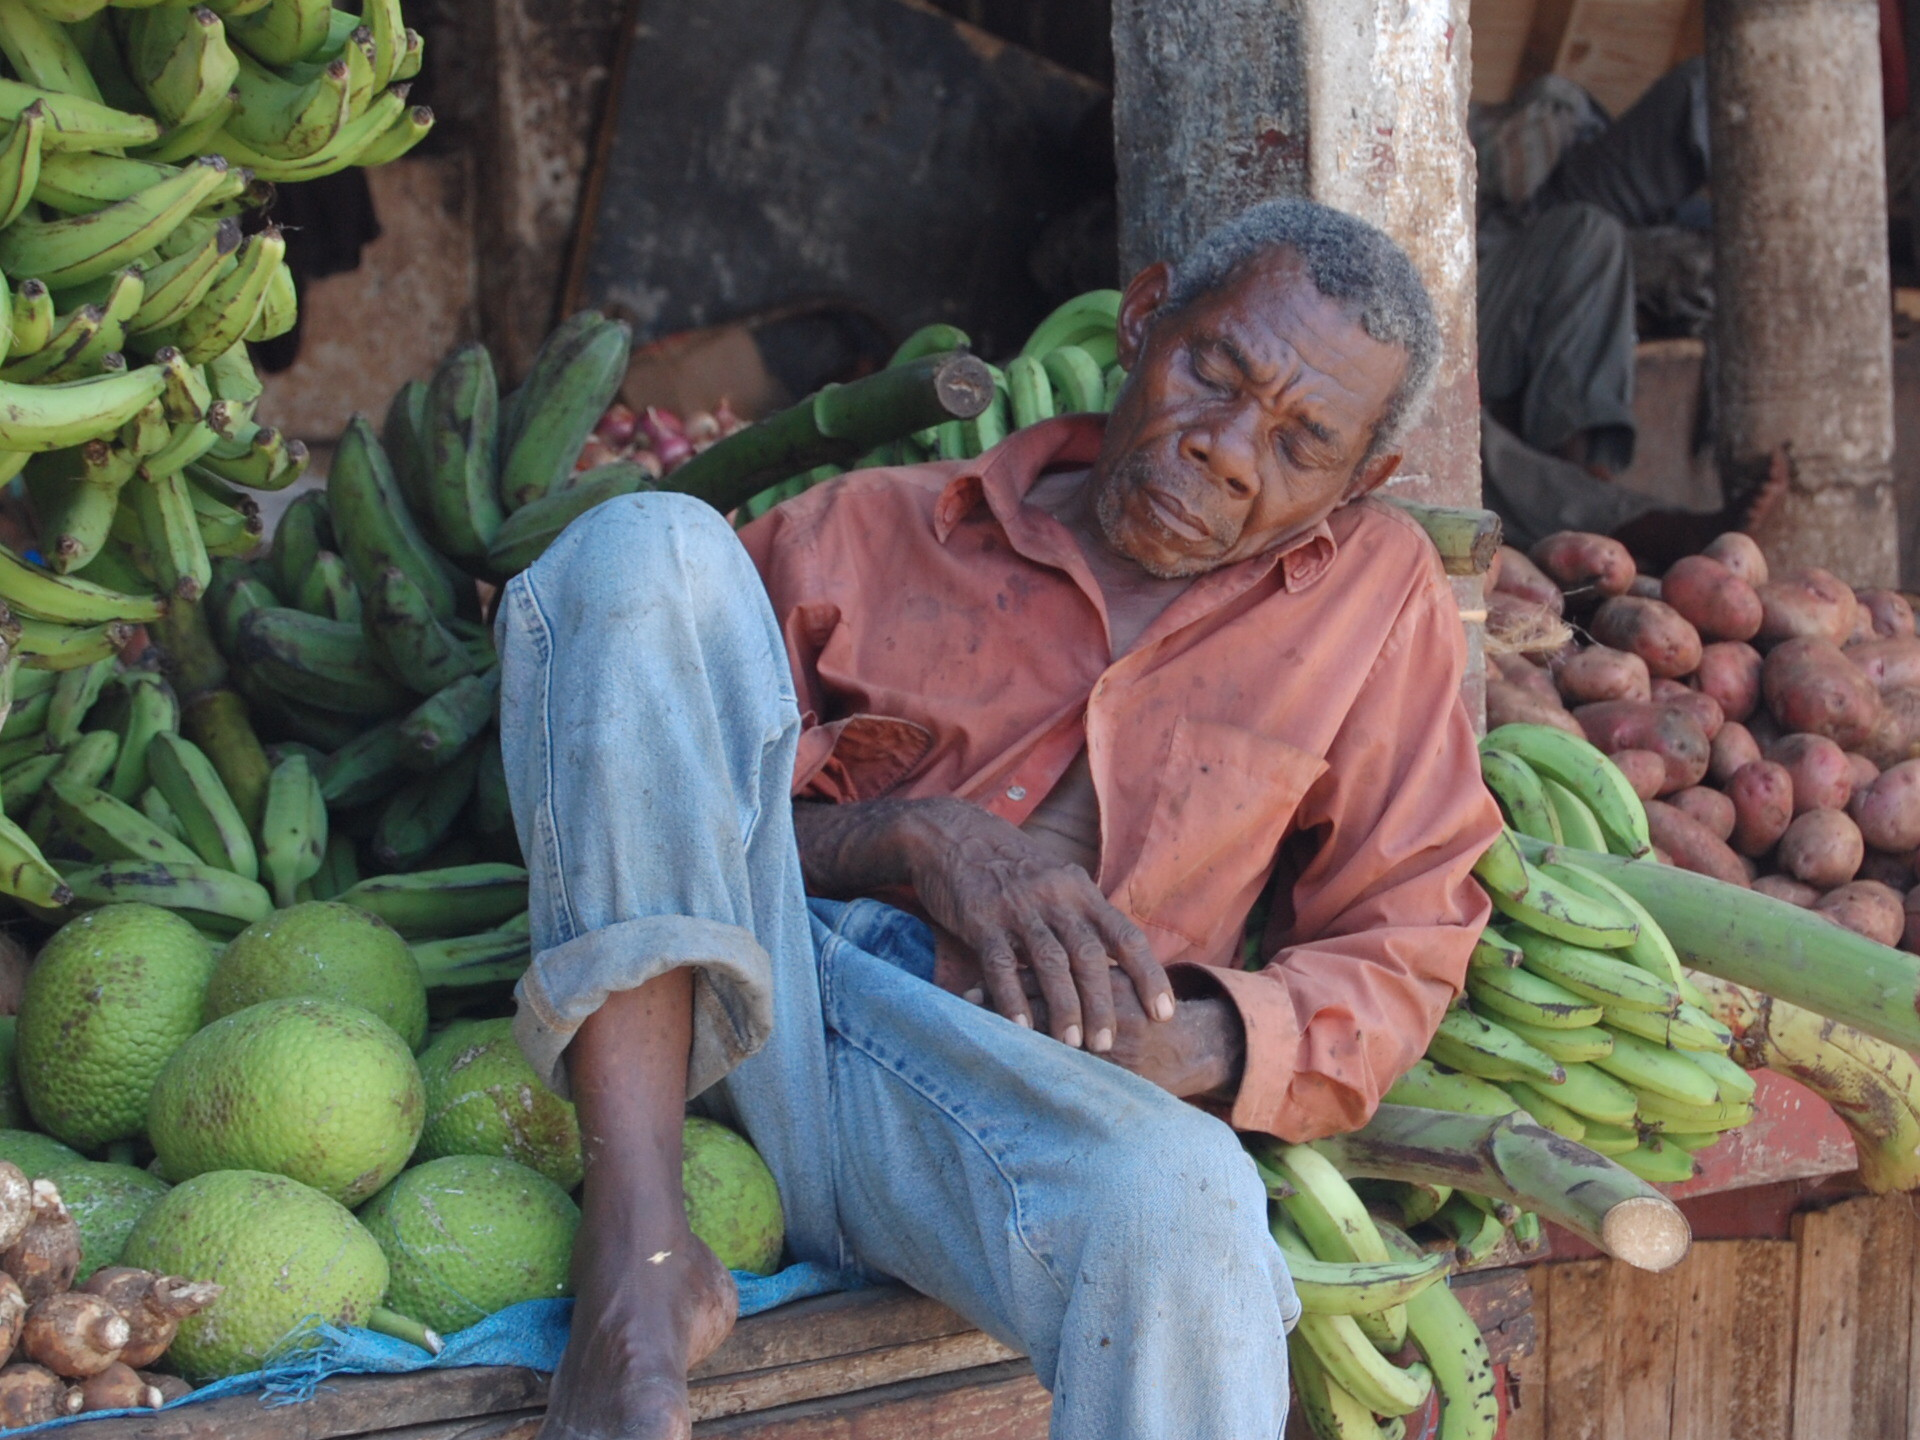 Old man in fruit market - Matthew Lightfoot